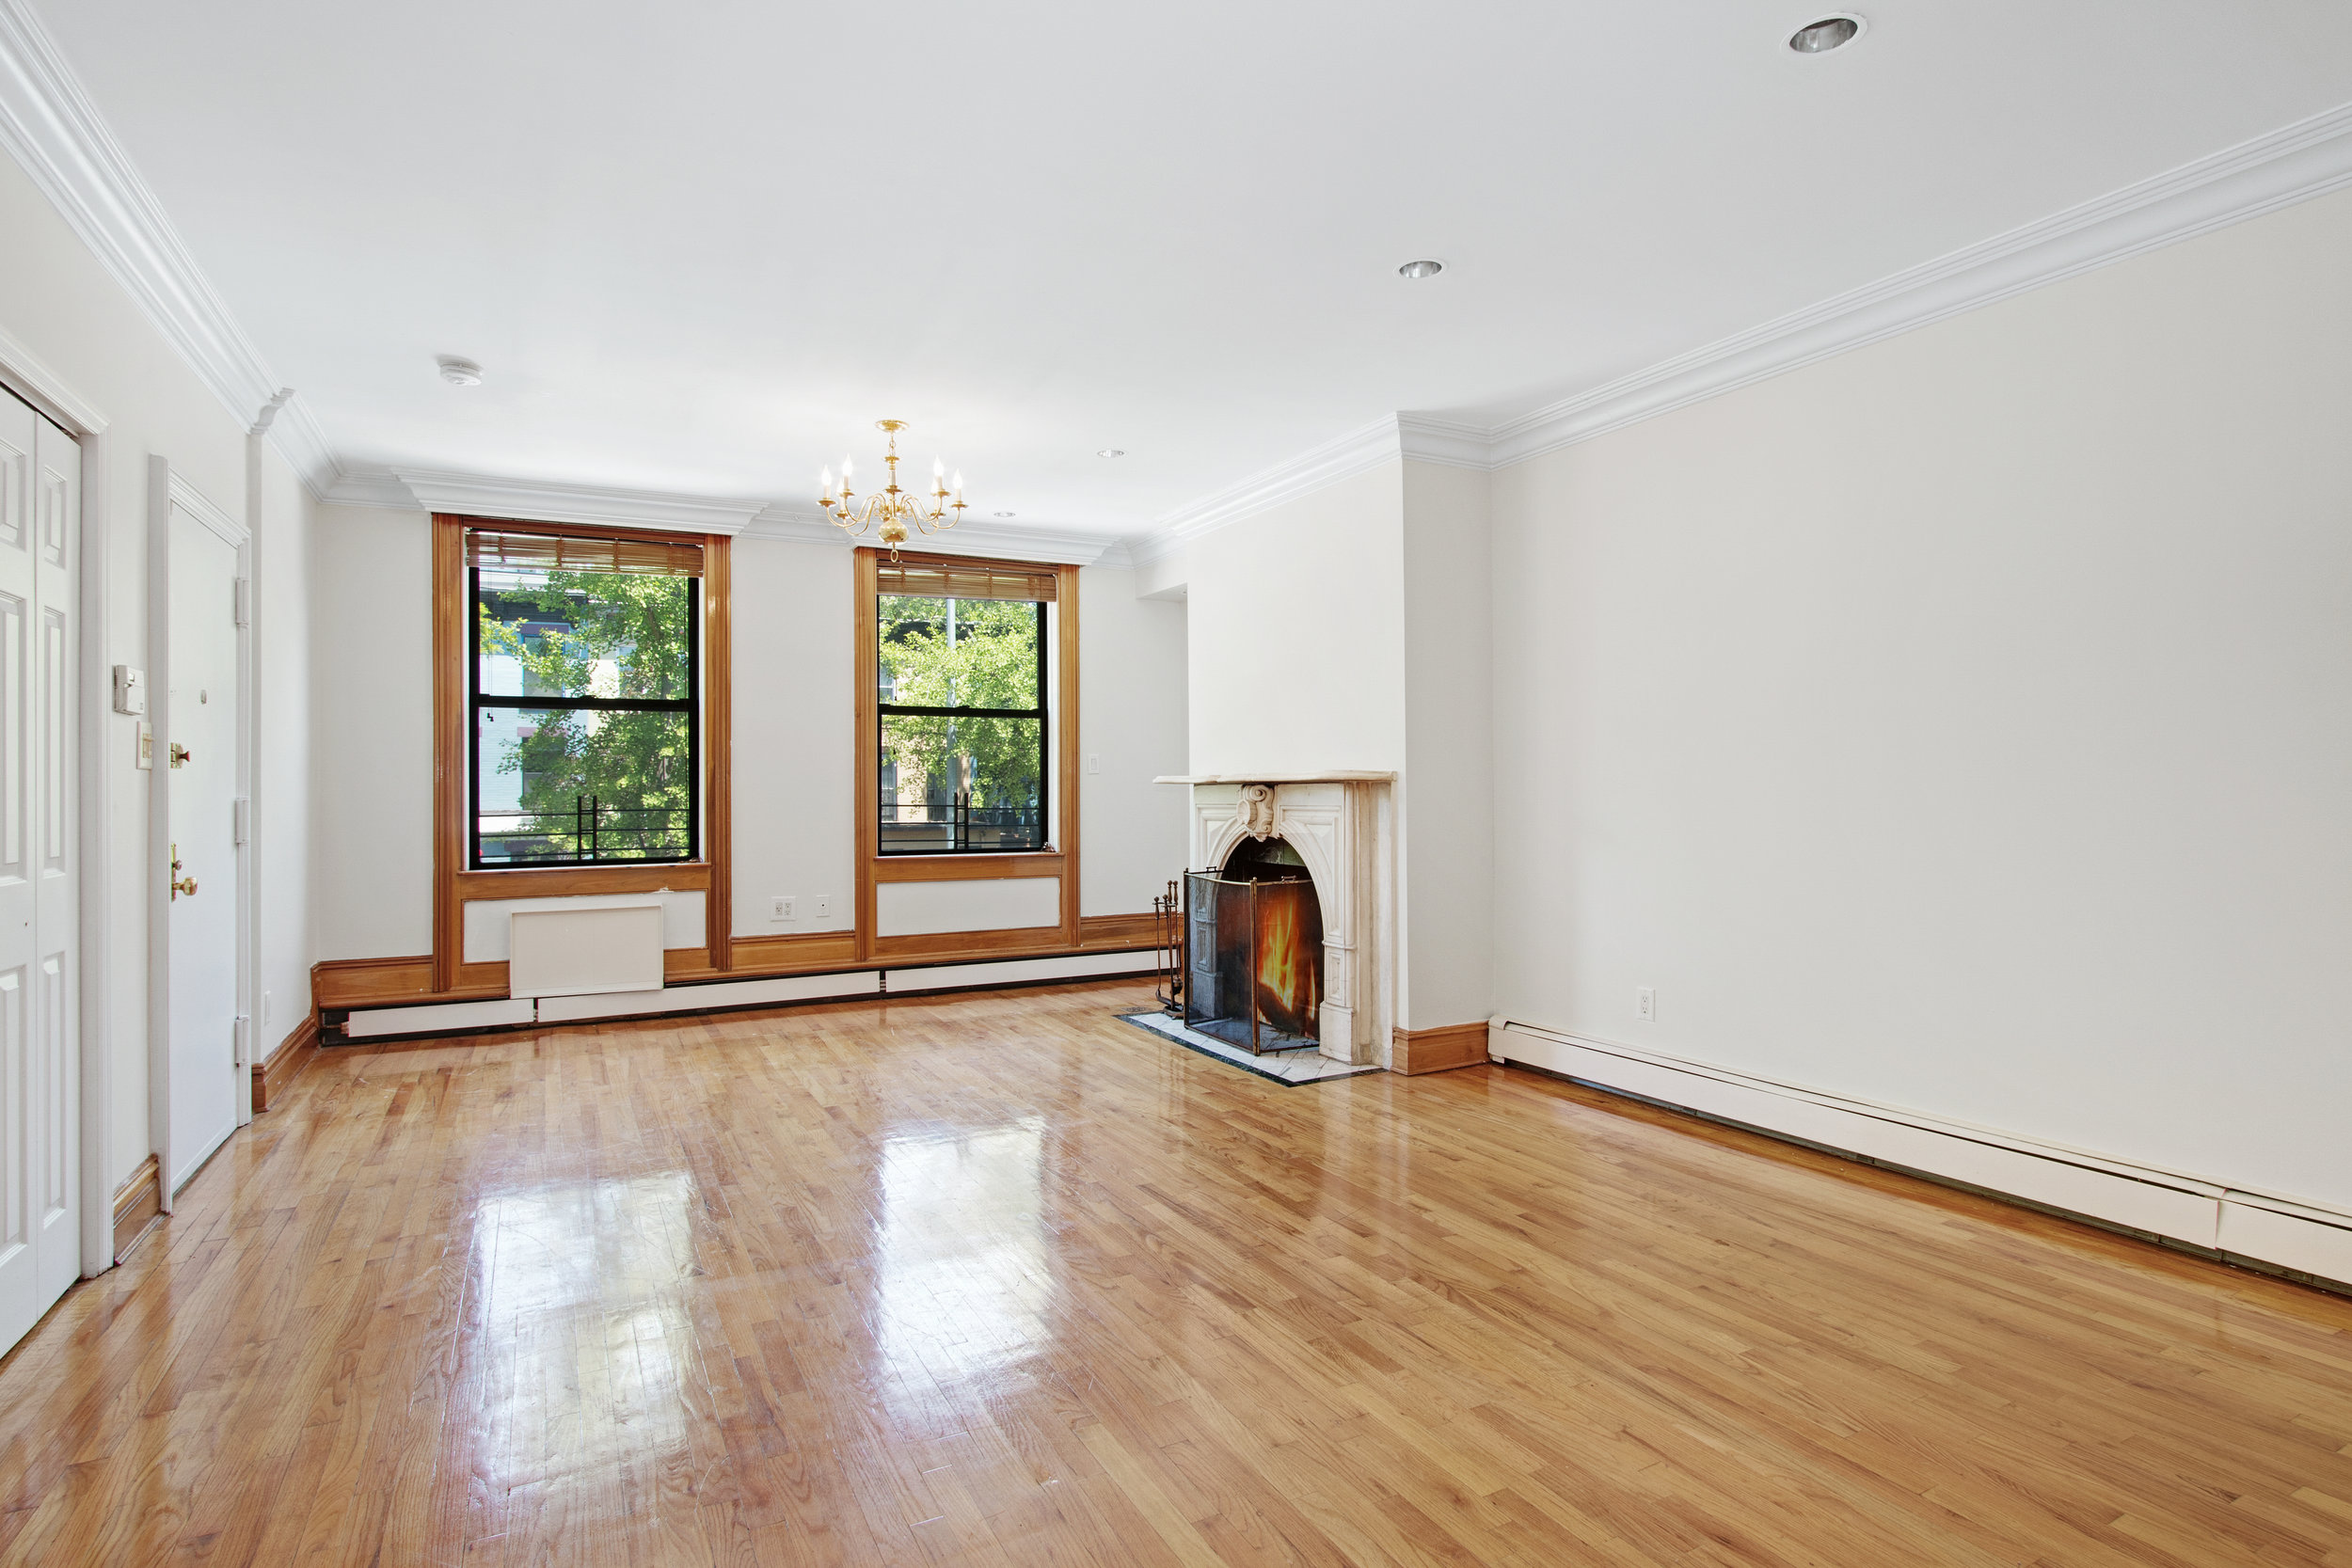 $3,600/month 2.0 BD | 2.0 BA | 1000 SF  Boerum Hill  470 Warren Street